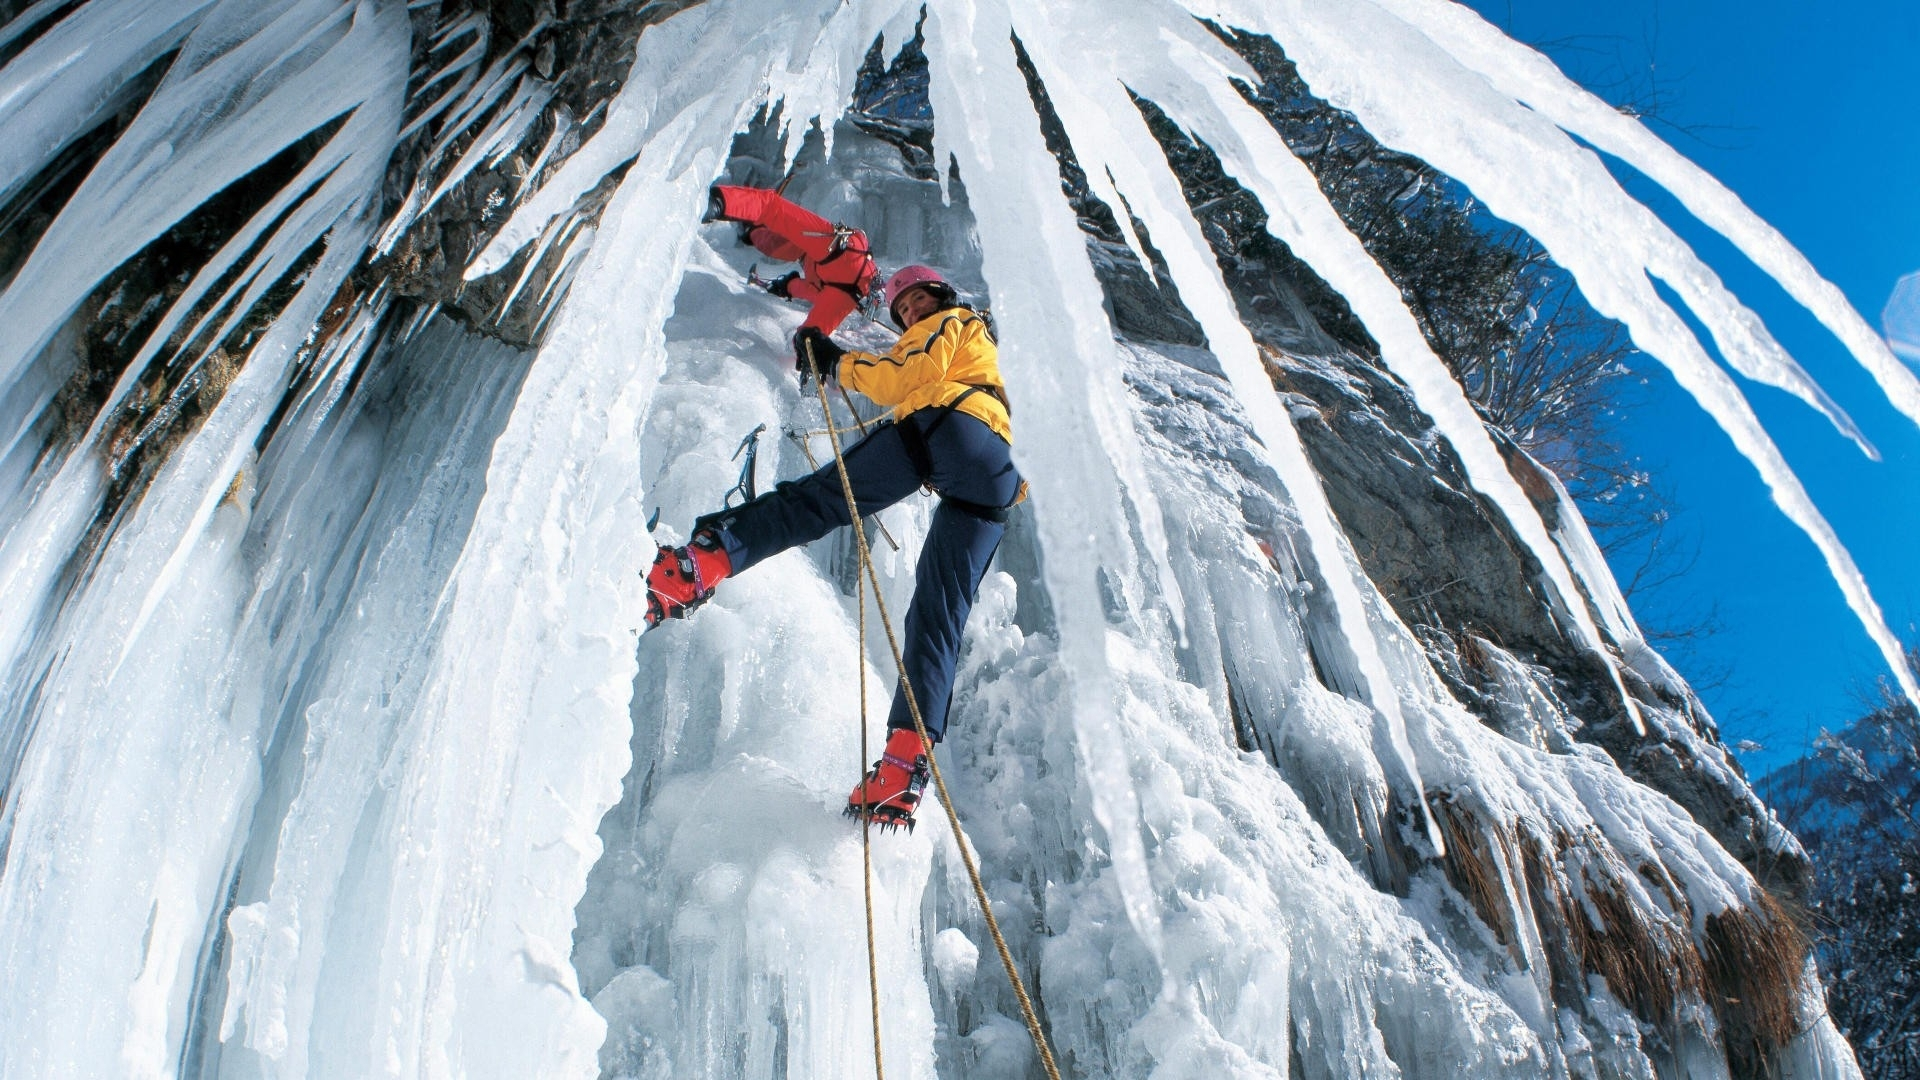 climb ice extreme people mountains